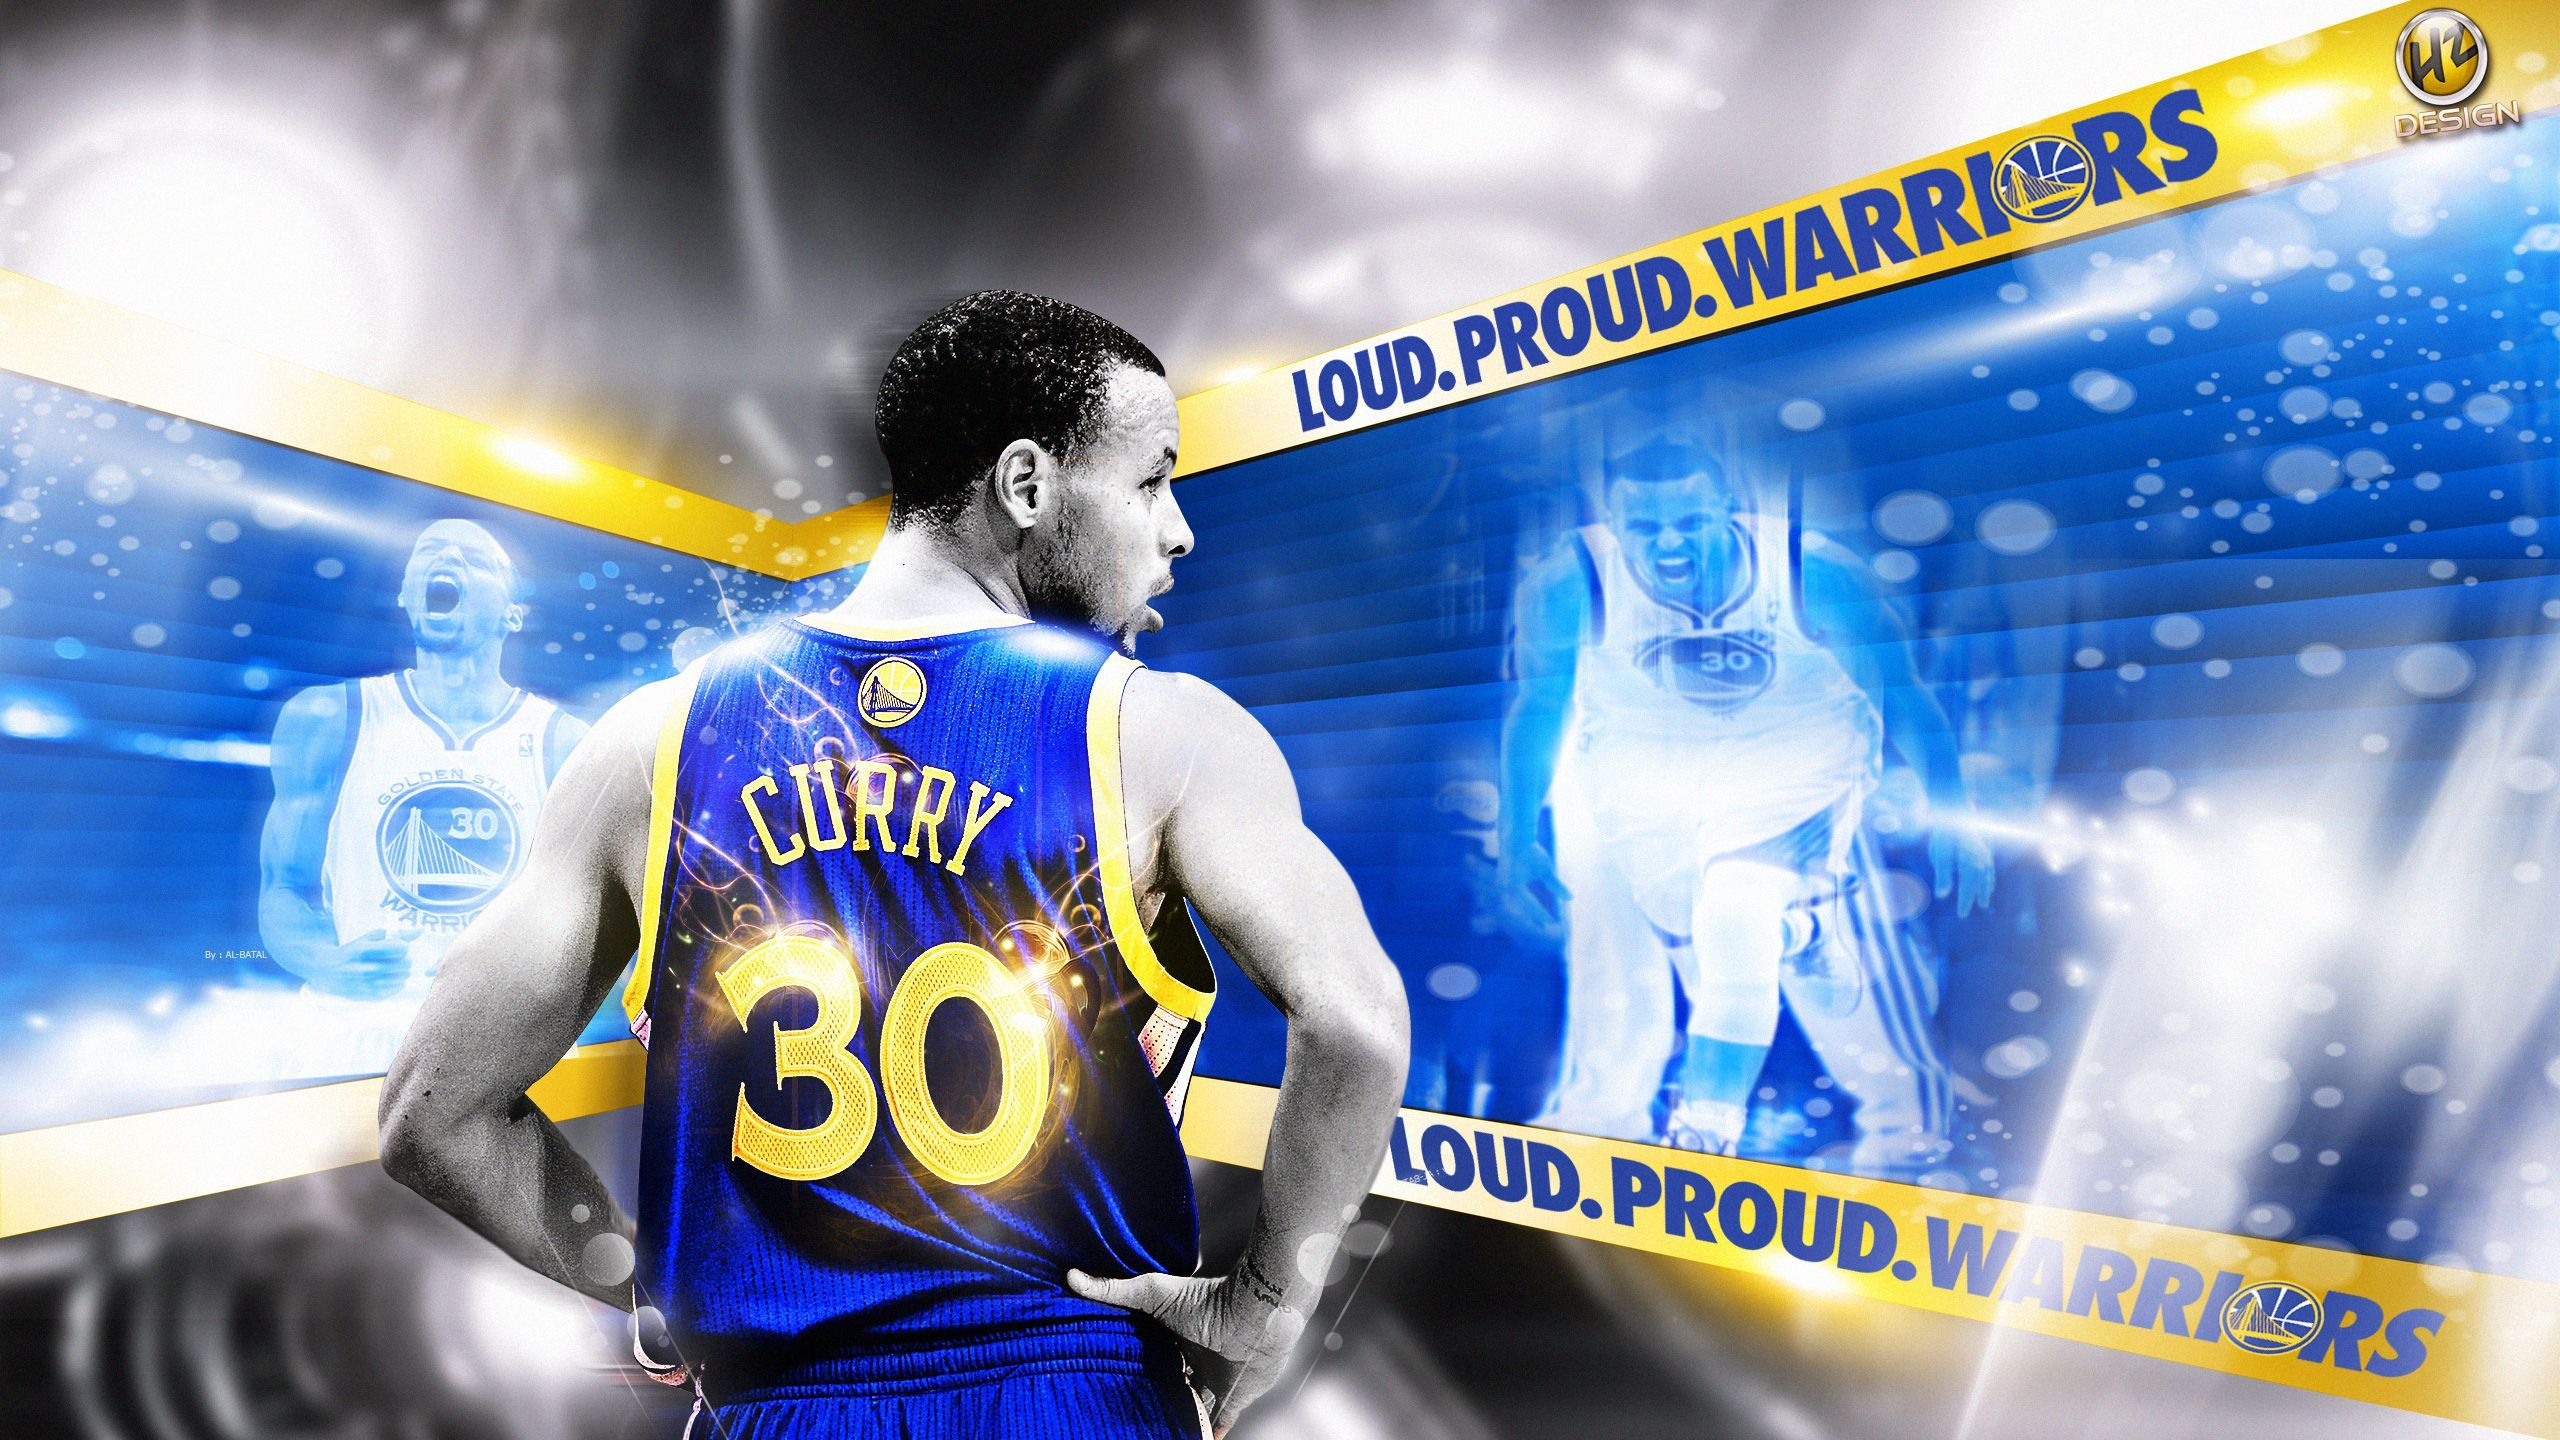 wallpapers of stephen curry